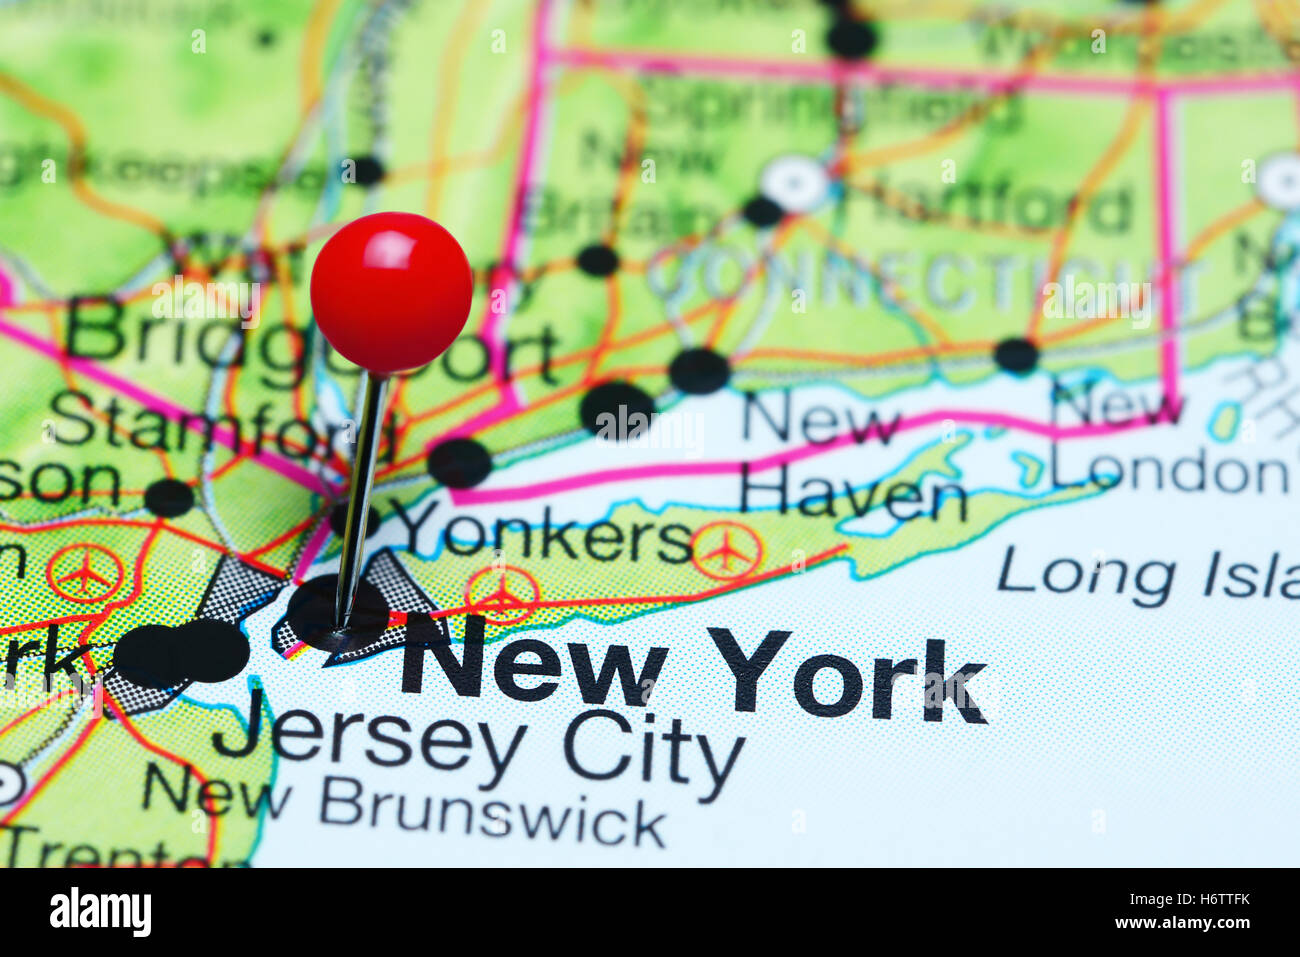 New York Pinned On A Map Of USA Stock Photo Royalty Free Image - New york on the map of usa